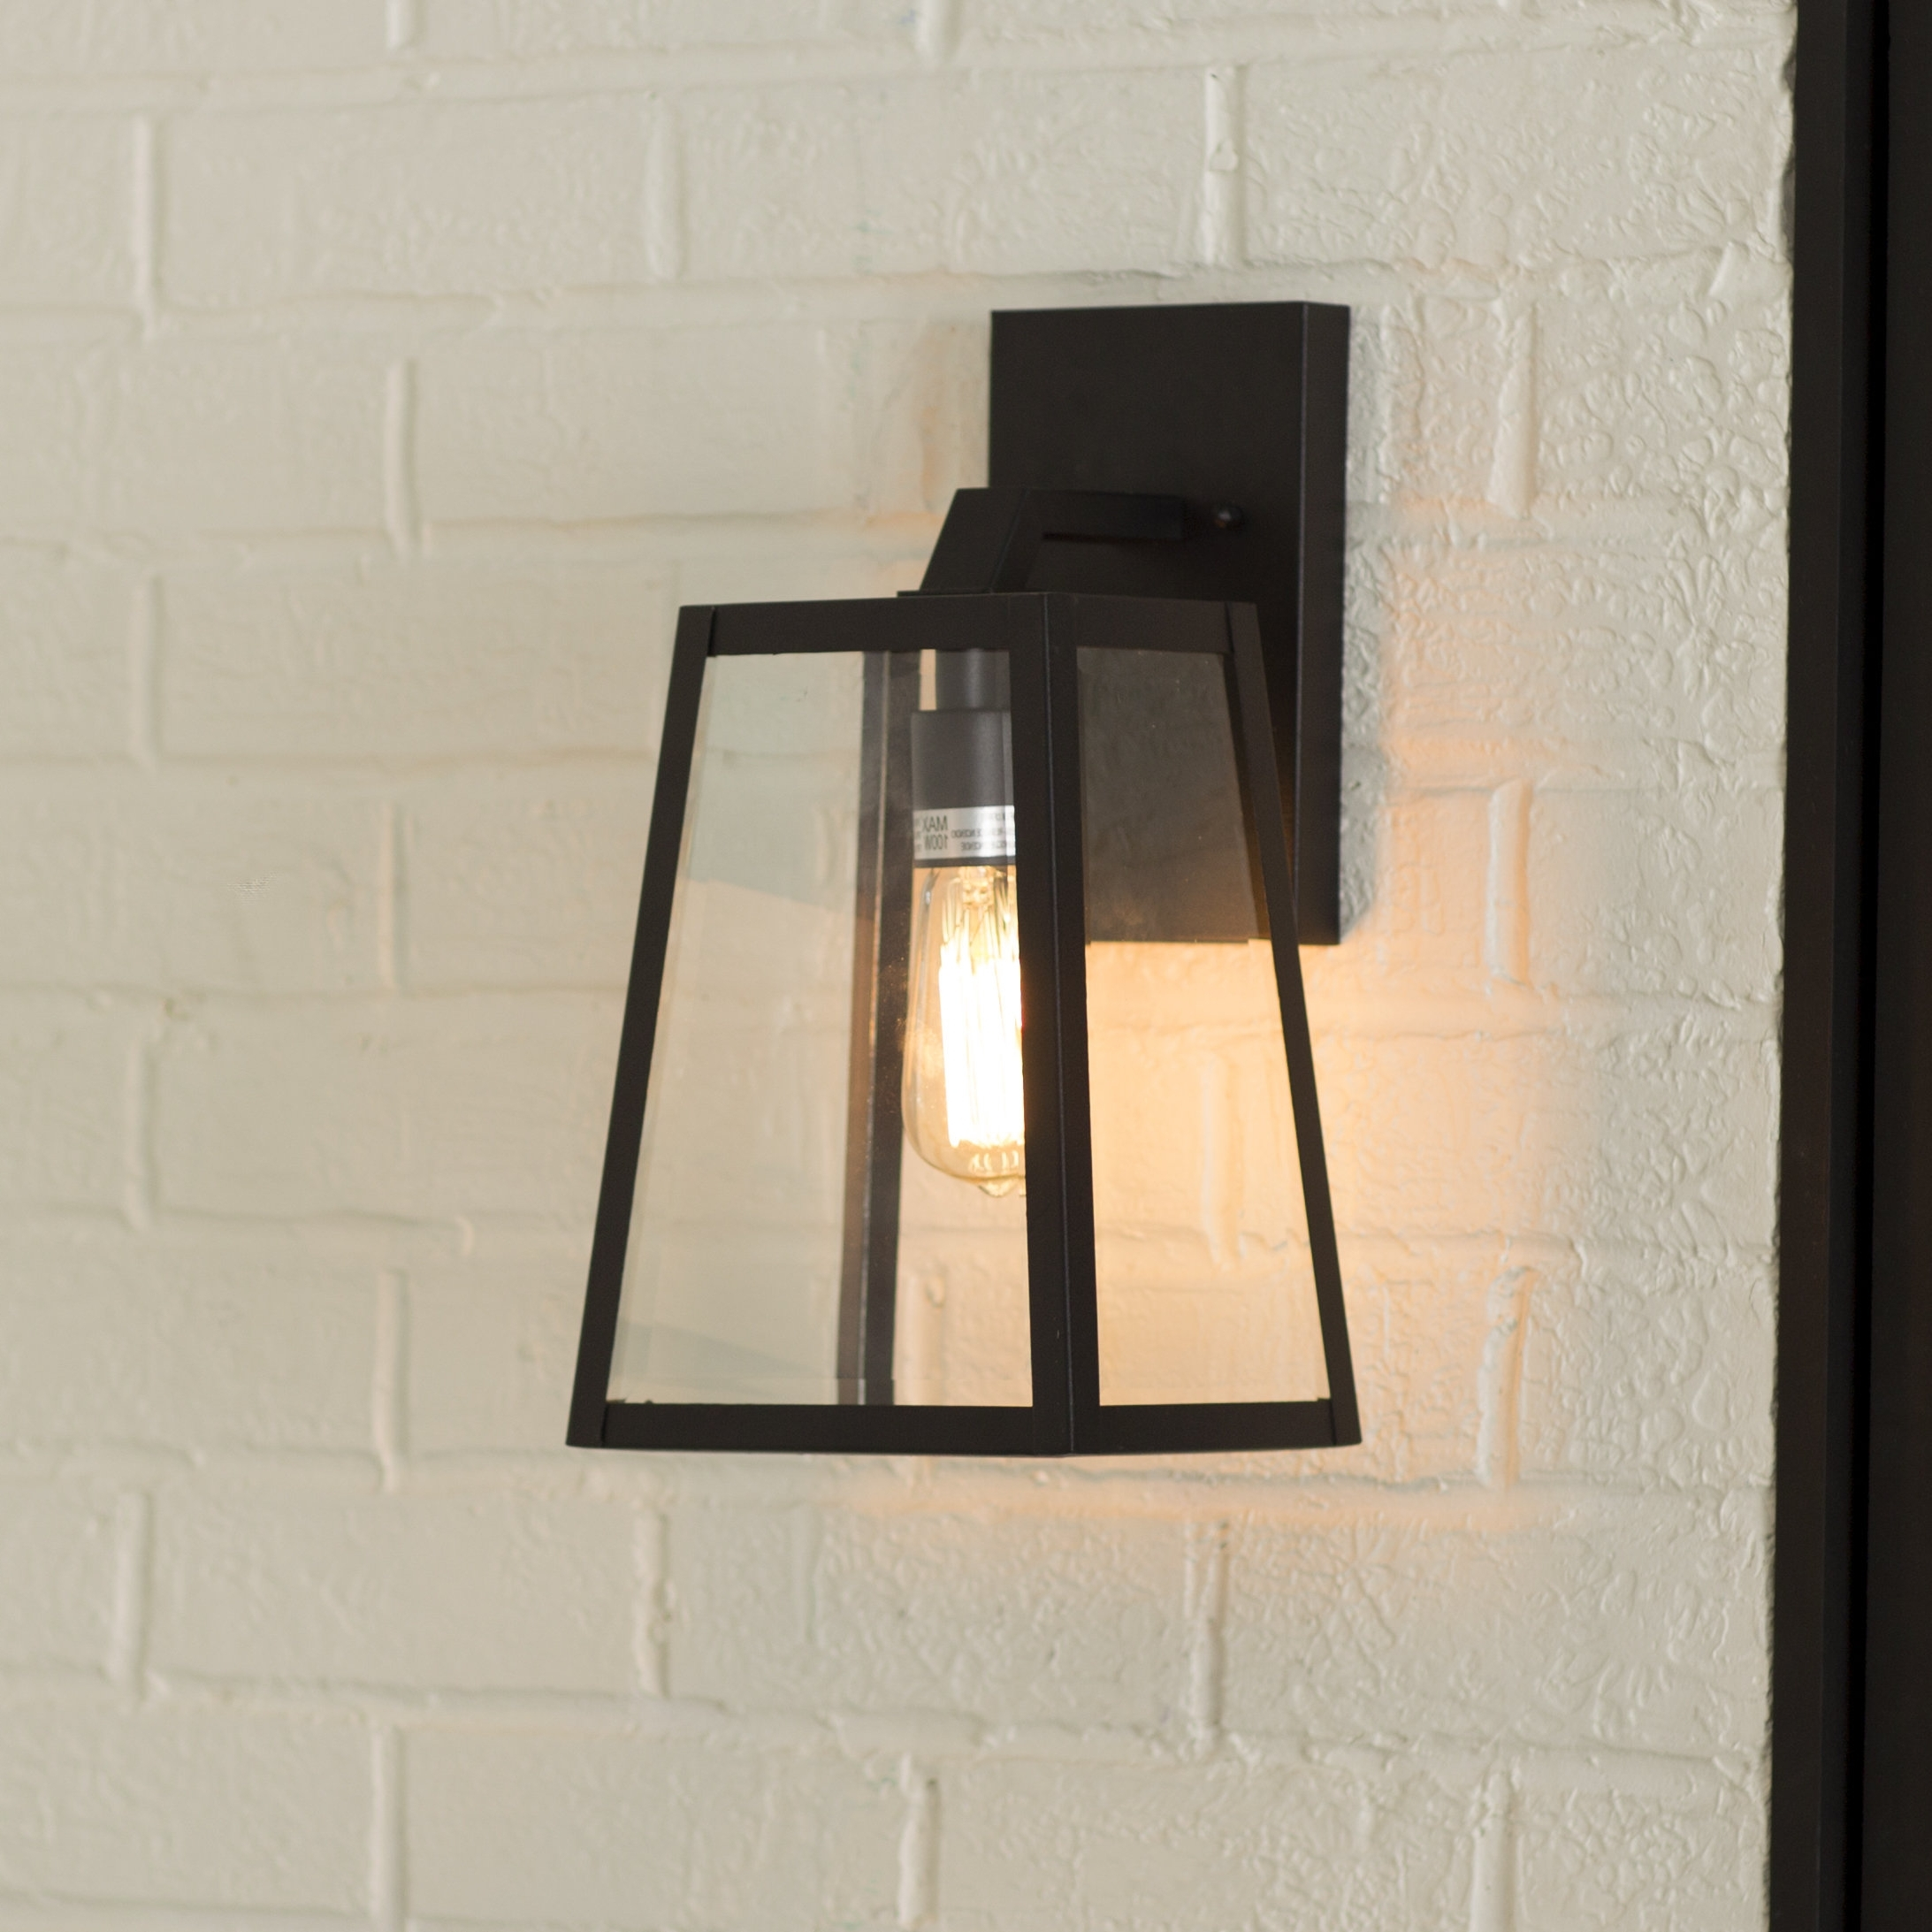 Wayfair Pertaining To Well Known Outdoor Wall Lanterns (View 9 of 20)